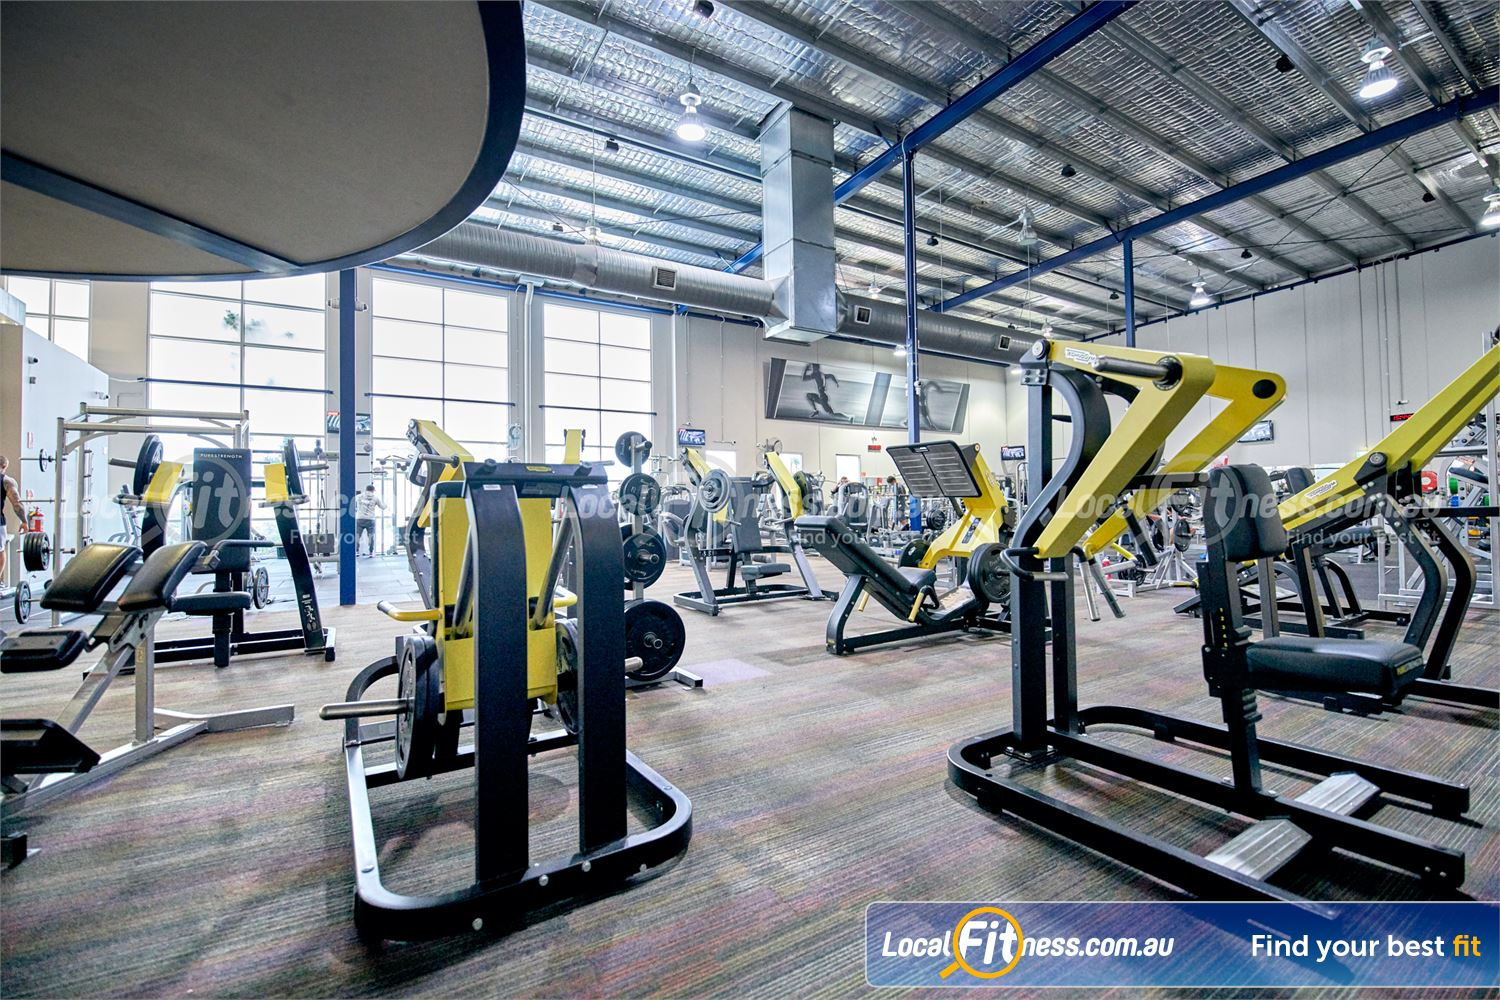 Fitness First Malvern Valley Near Mount Waverley Heavy duty plate-loading machines from Technogym Pure.